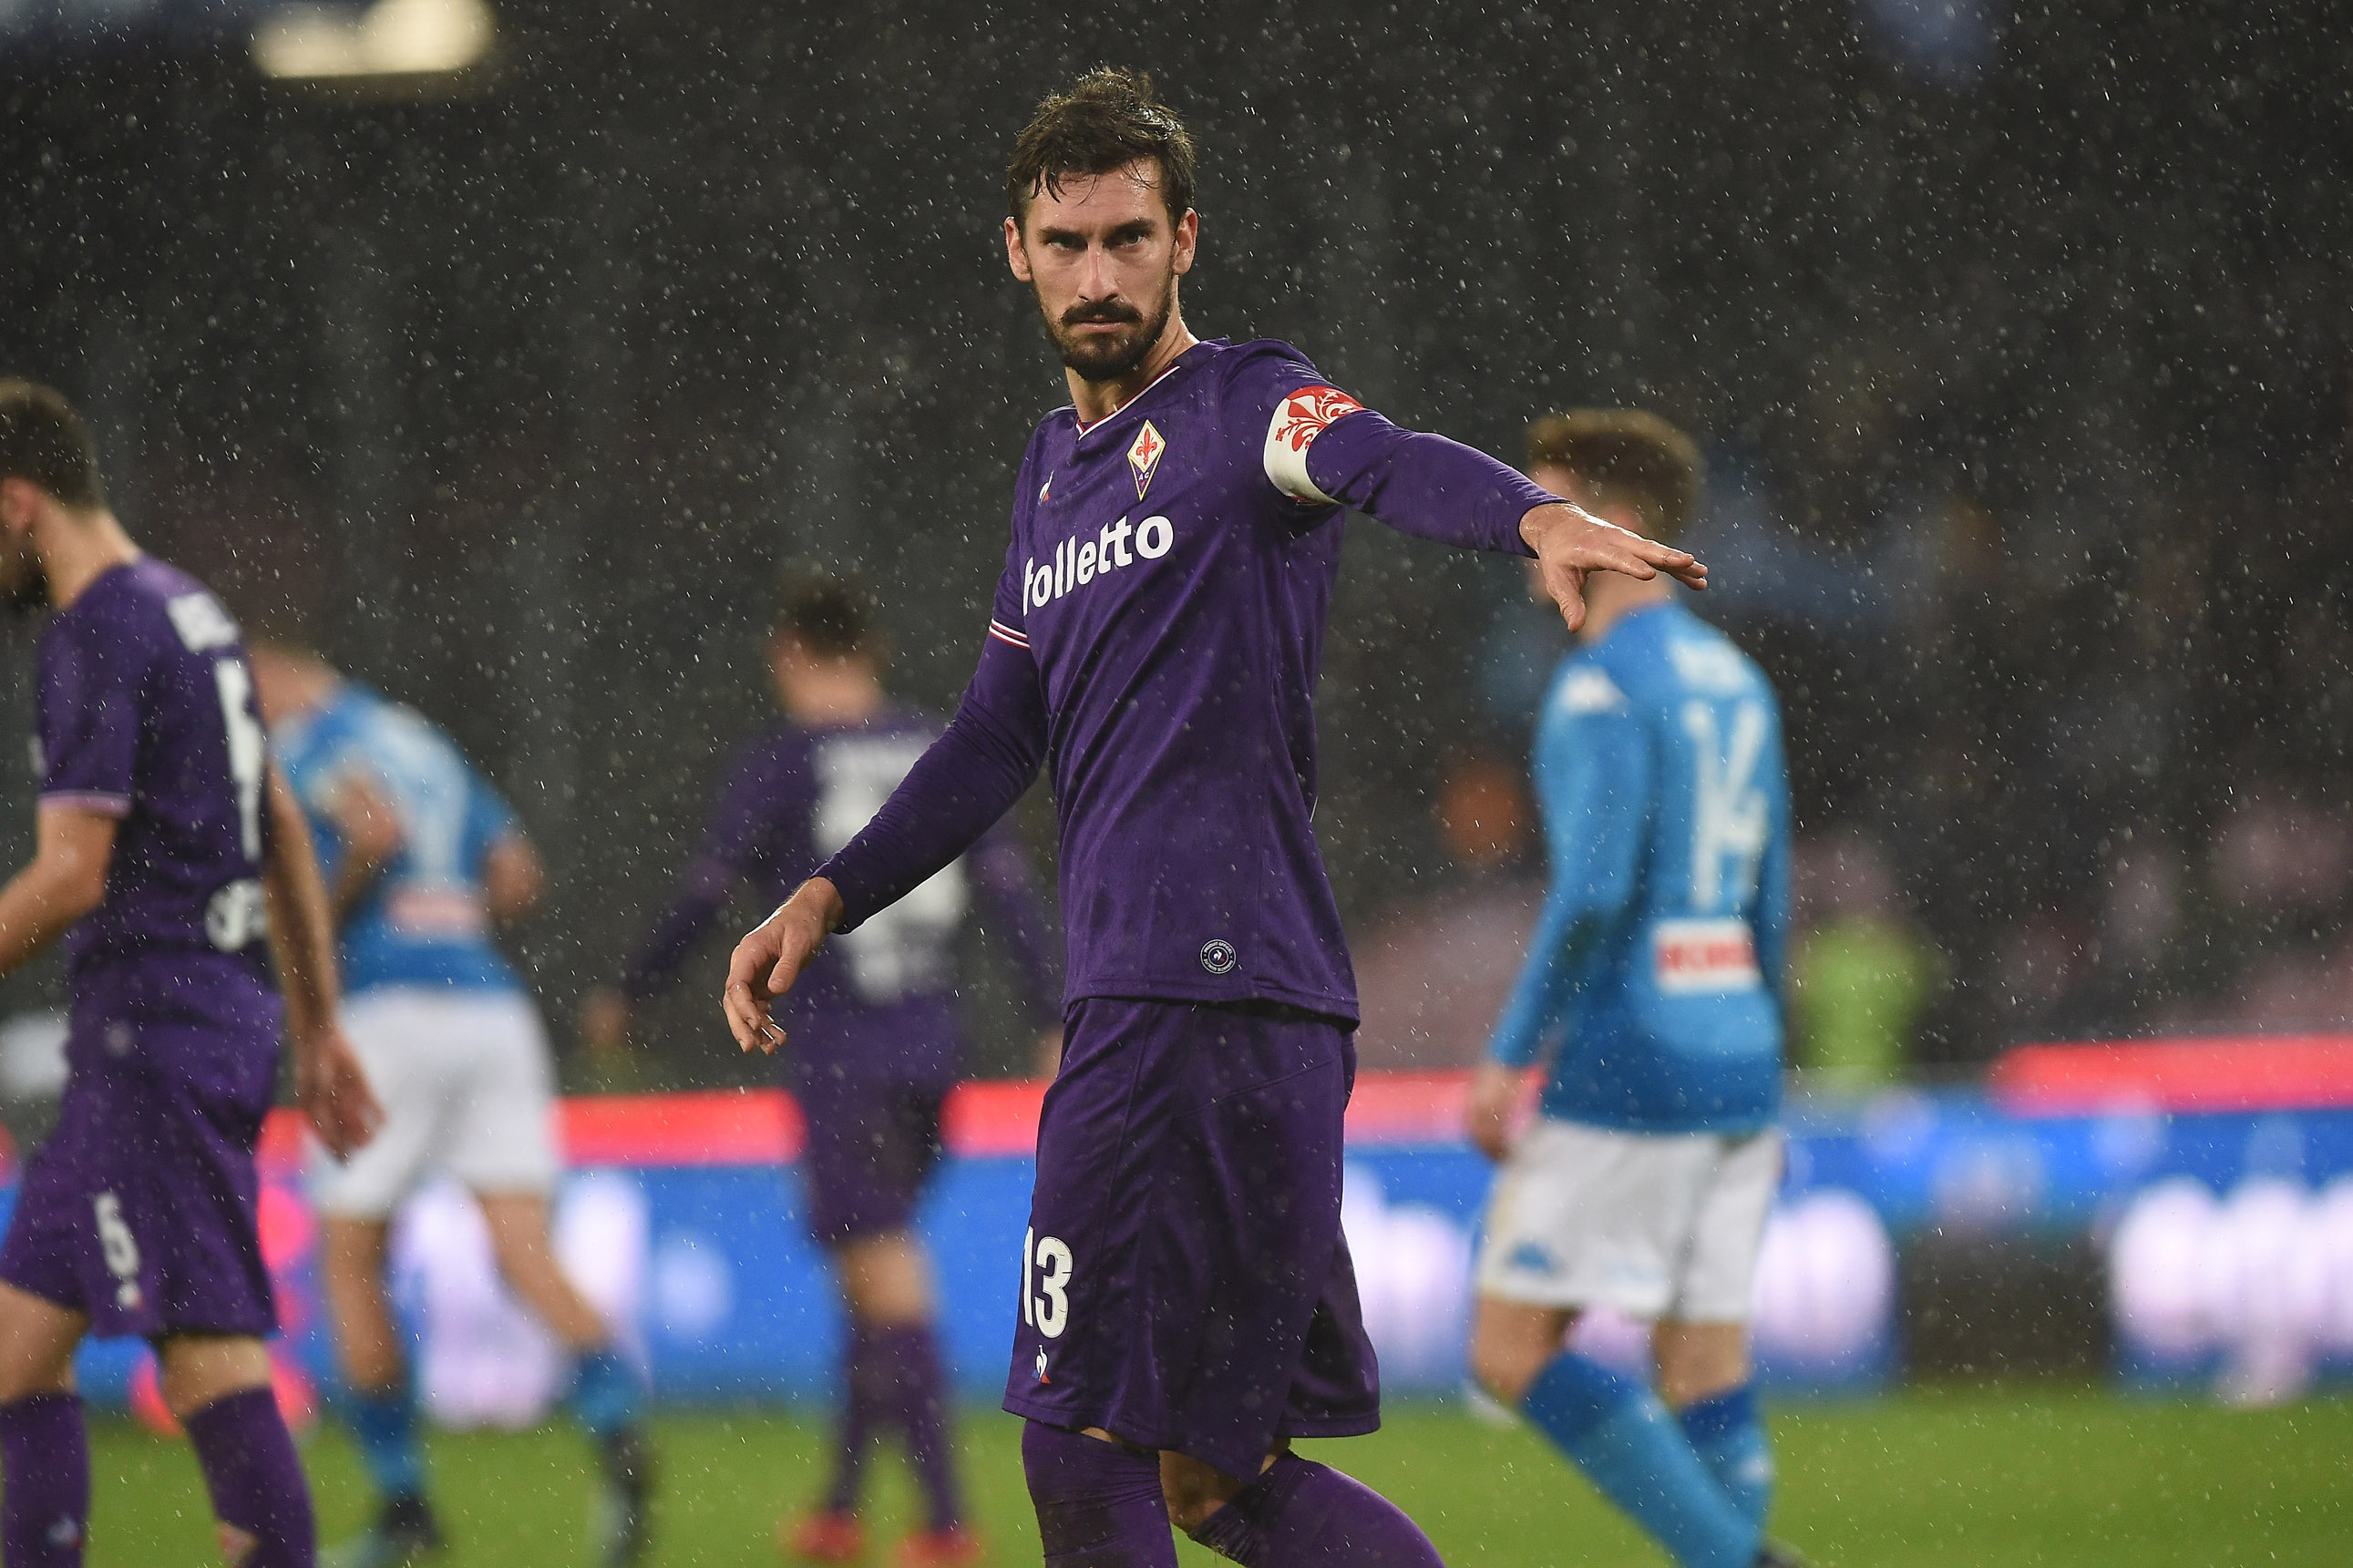 Fiorentina captain Davide Astori has passed away class=